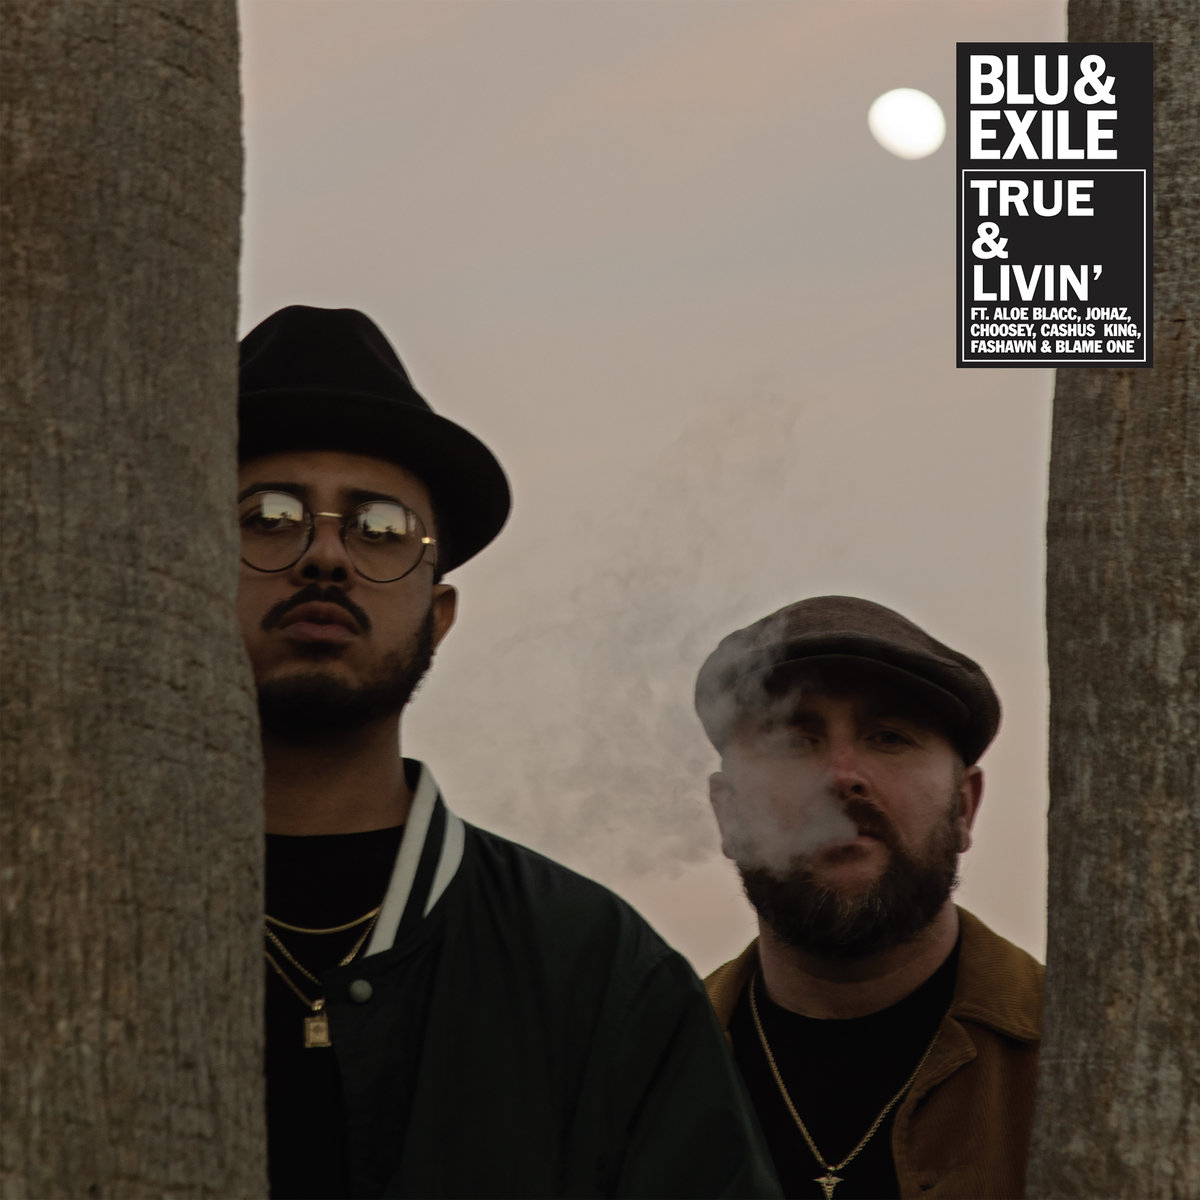 No Words #66: Blu & Exile, Radio Juicy, Abstract Orchestra (Madvillain Vol. 2), Àbáse, Soviet Konducta